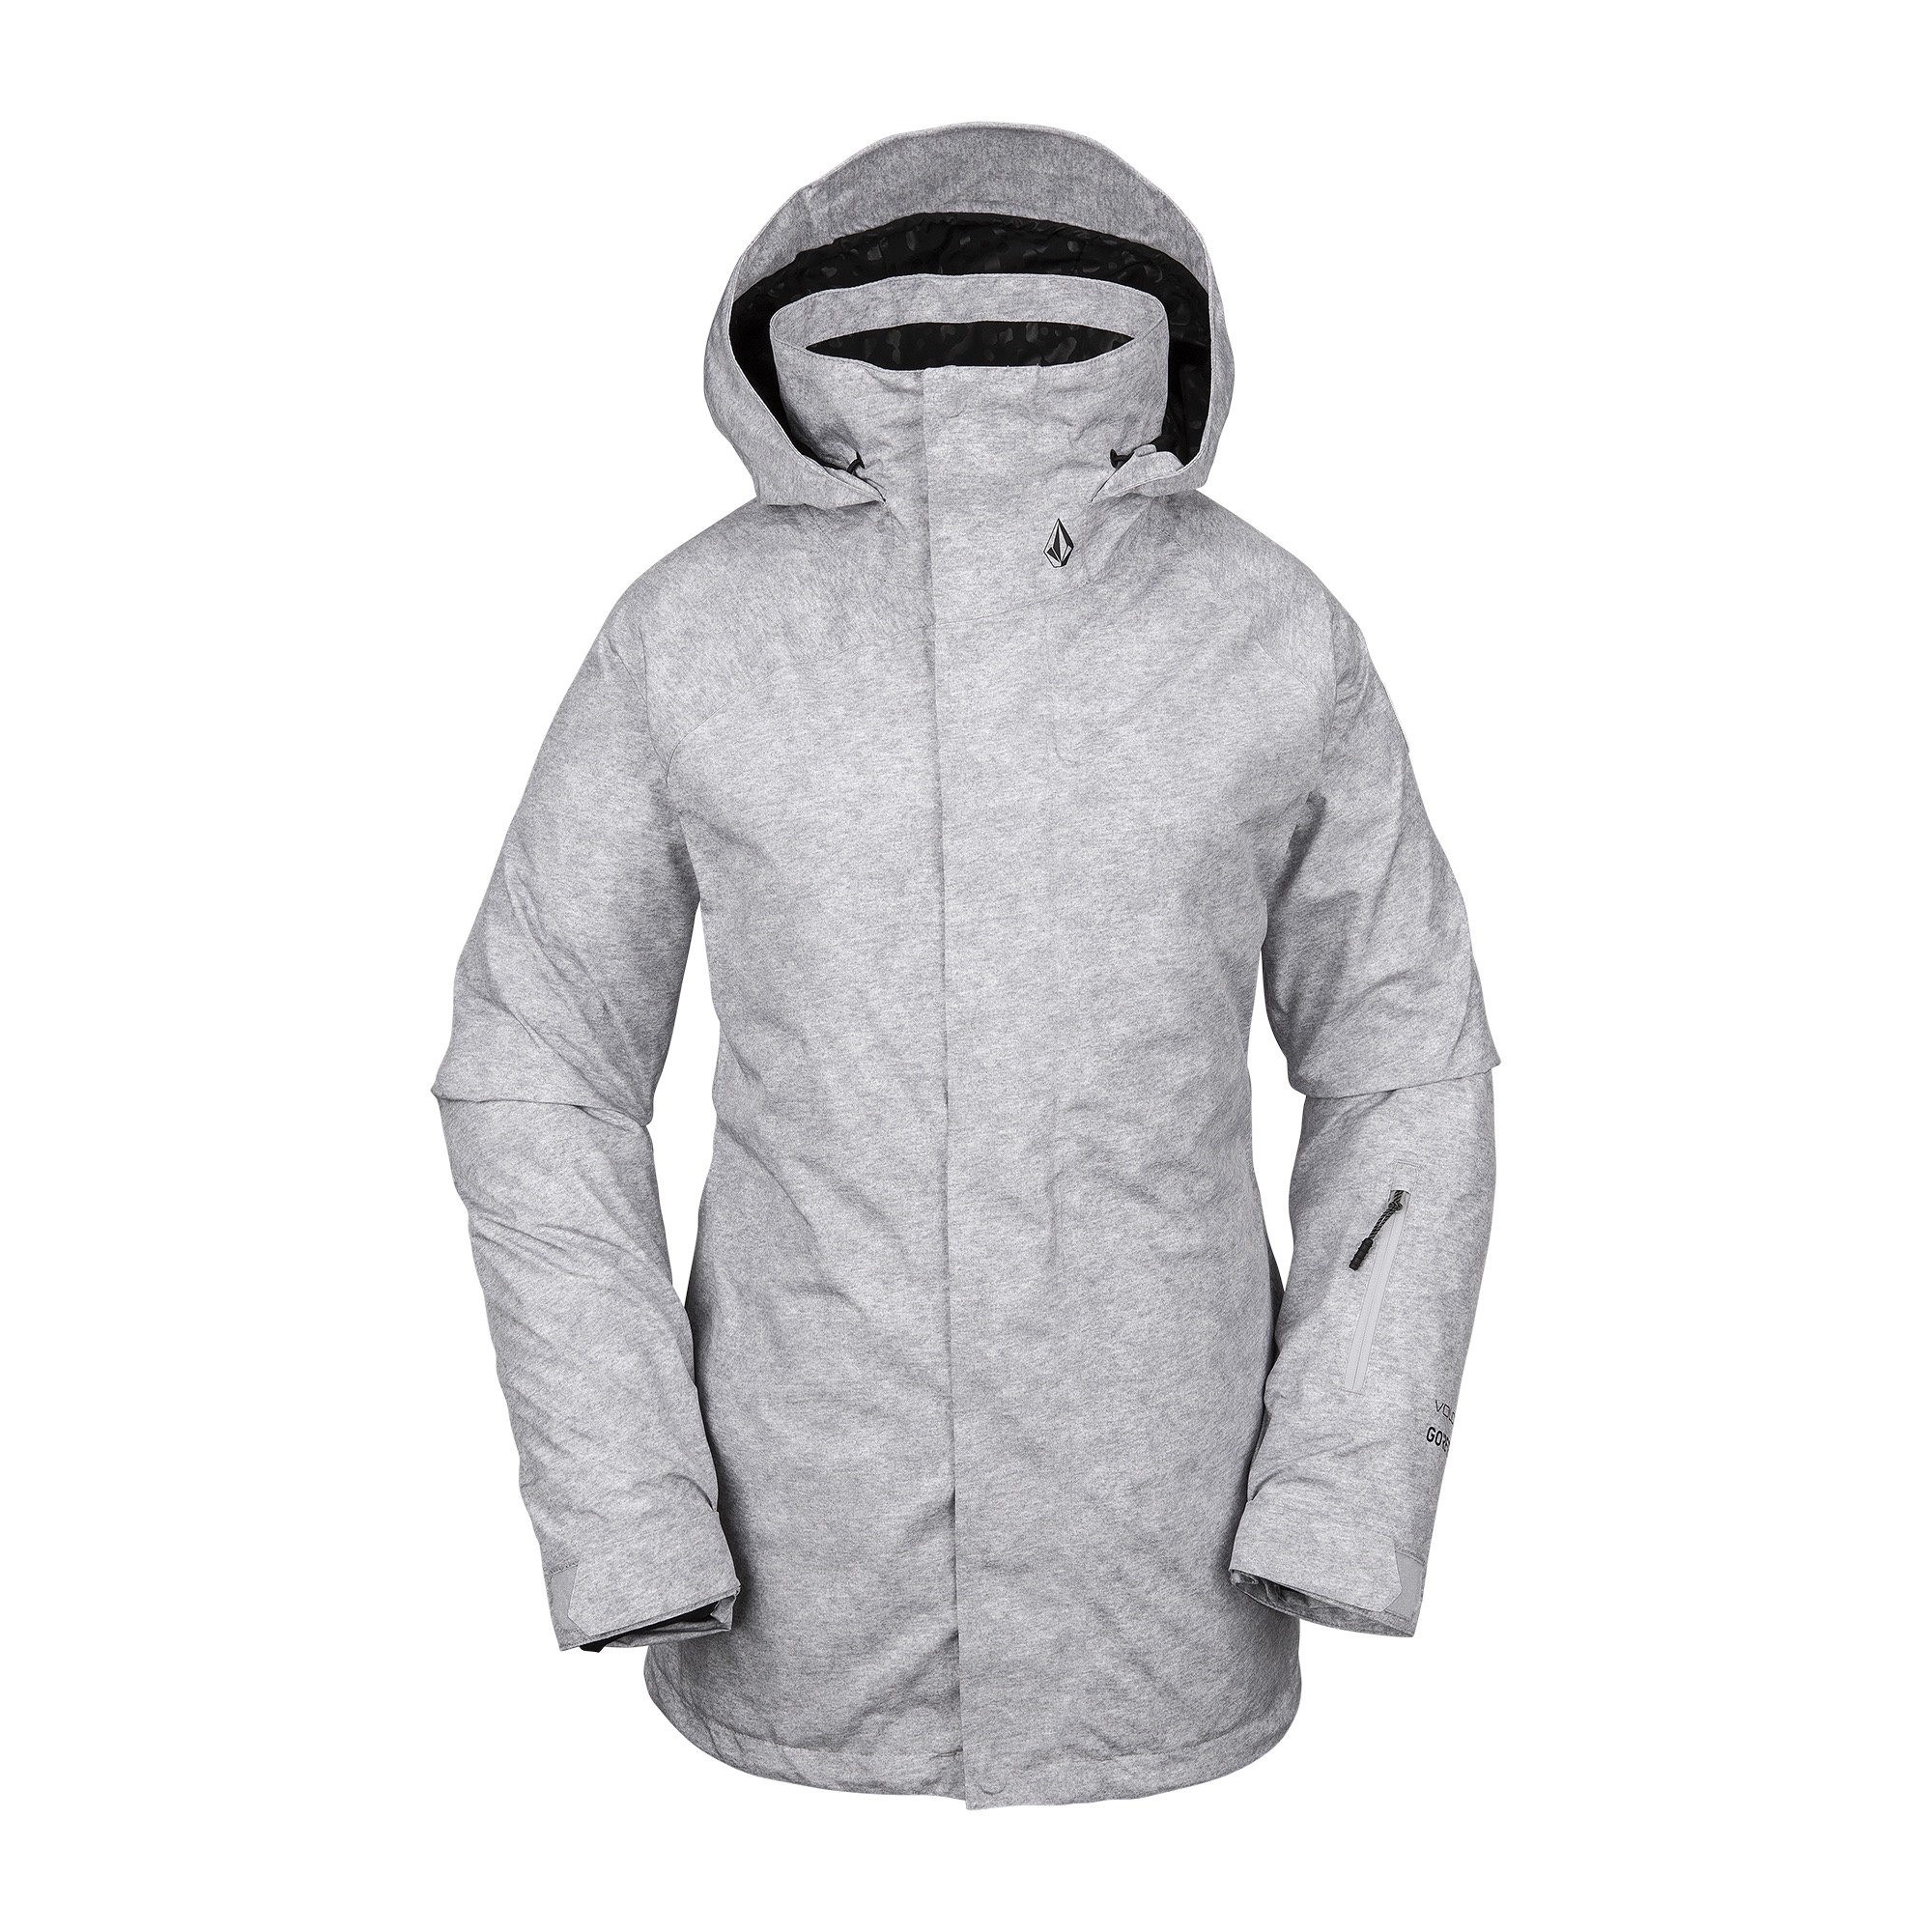 Volcom Inc. 20 LEDA GORE-TEX JACKET